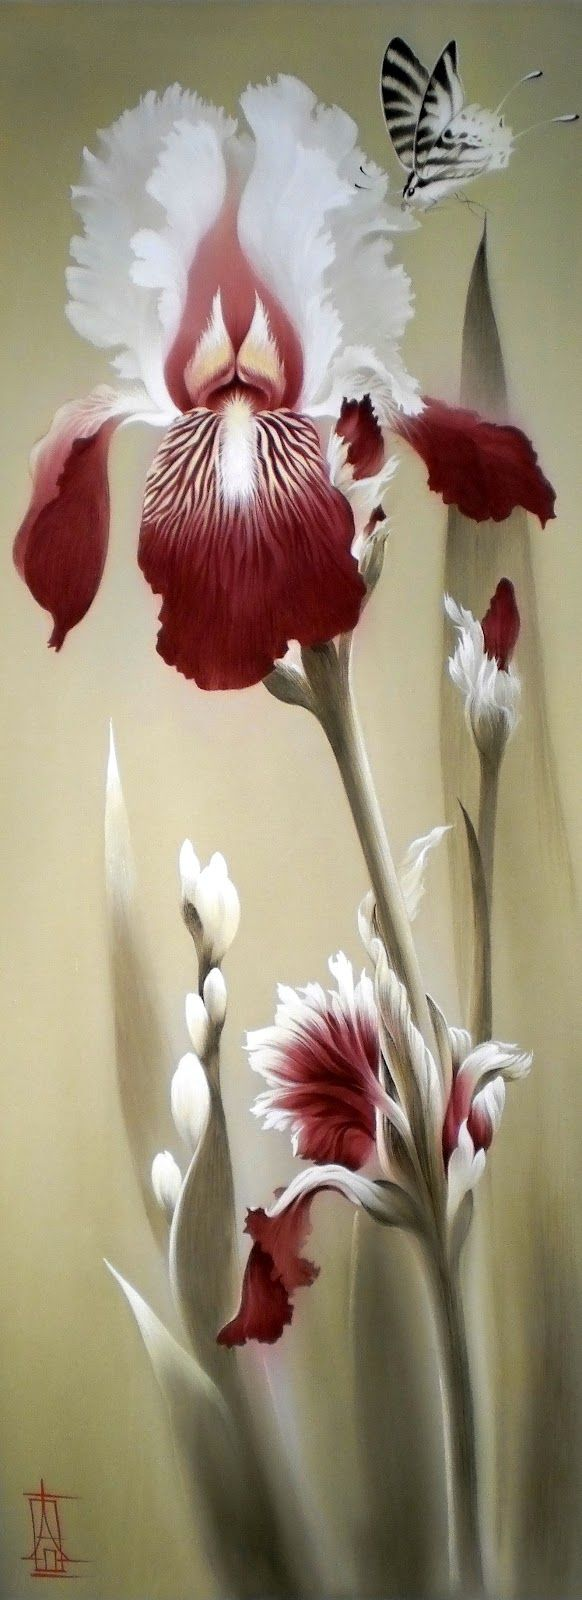 Nature. Flowers. Oseeva Alina. Discussion on LiveInternet - Russian Service ...